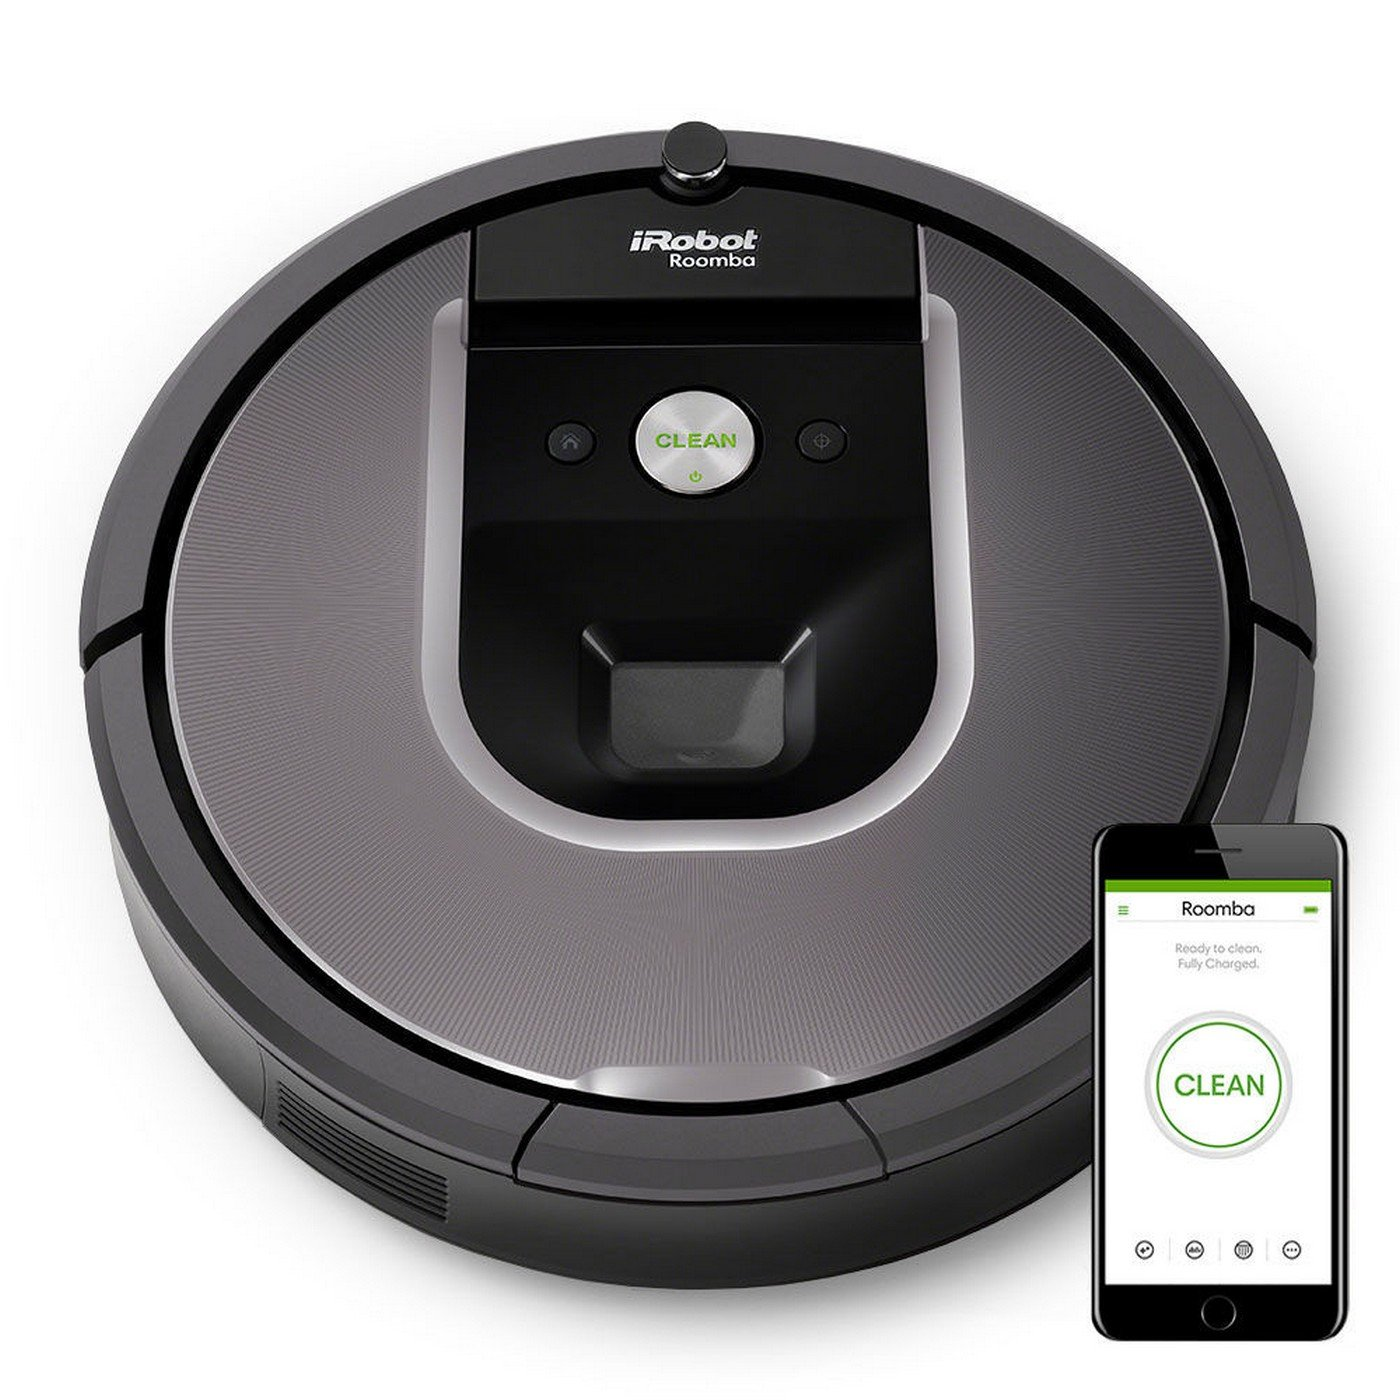 iRobot Roomba 960 Vacuum Cleaning Robot - Grey: Amazon.co.uk: DIY ...